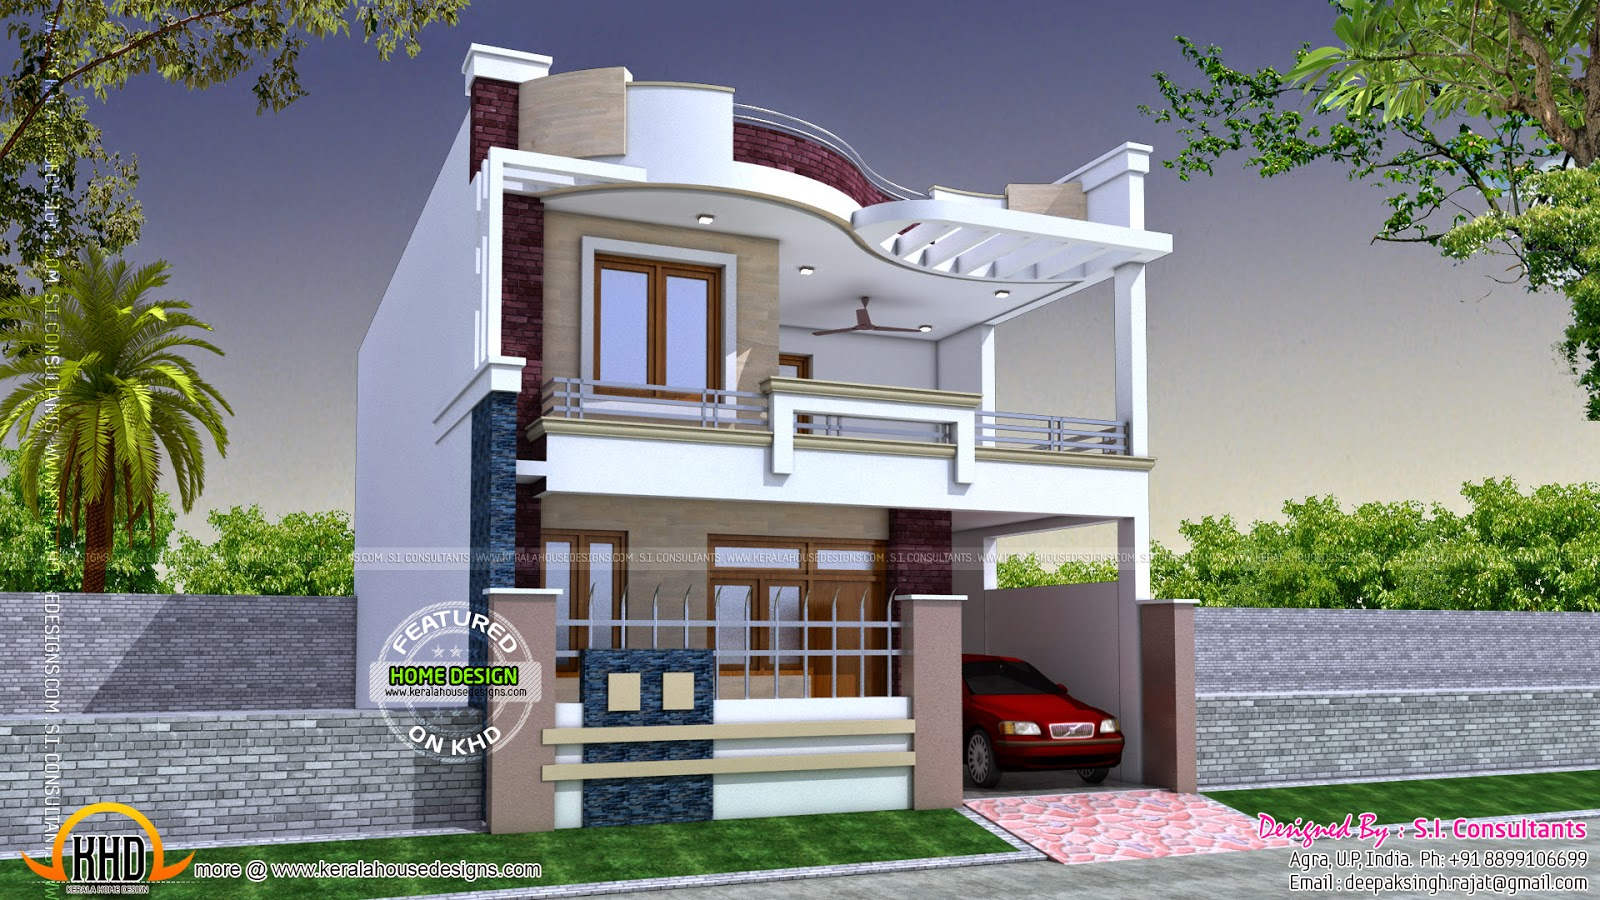 Modern indian home design kerala home design and floor plans for Home front design indian style